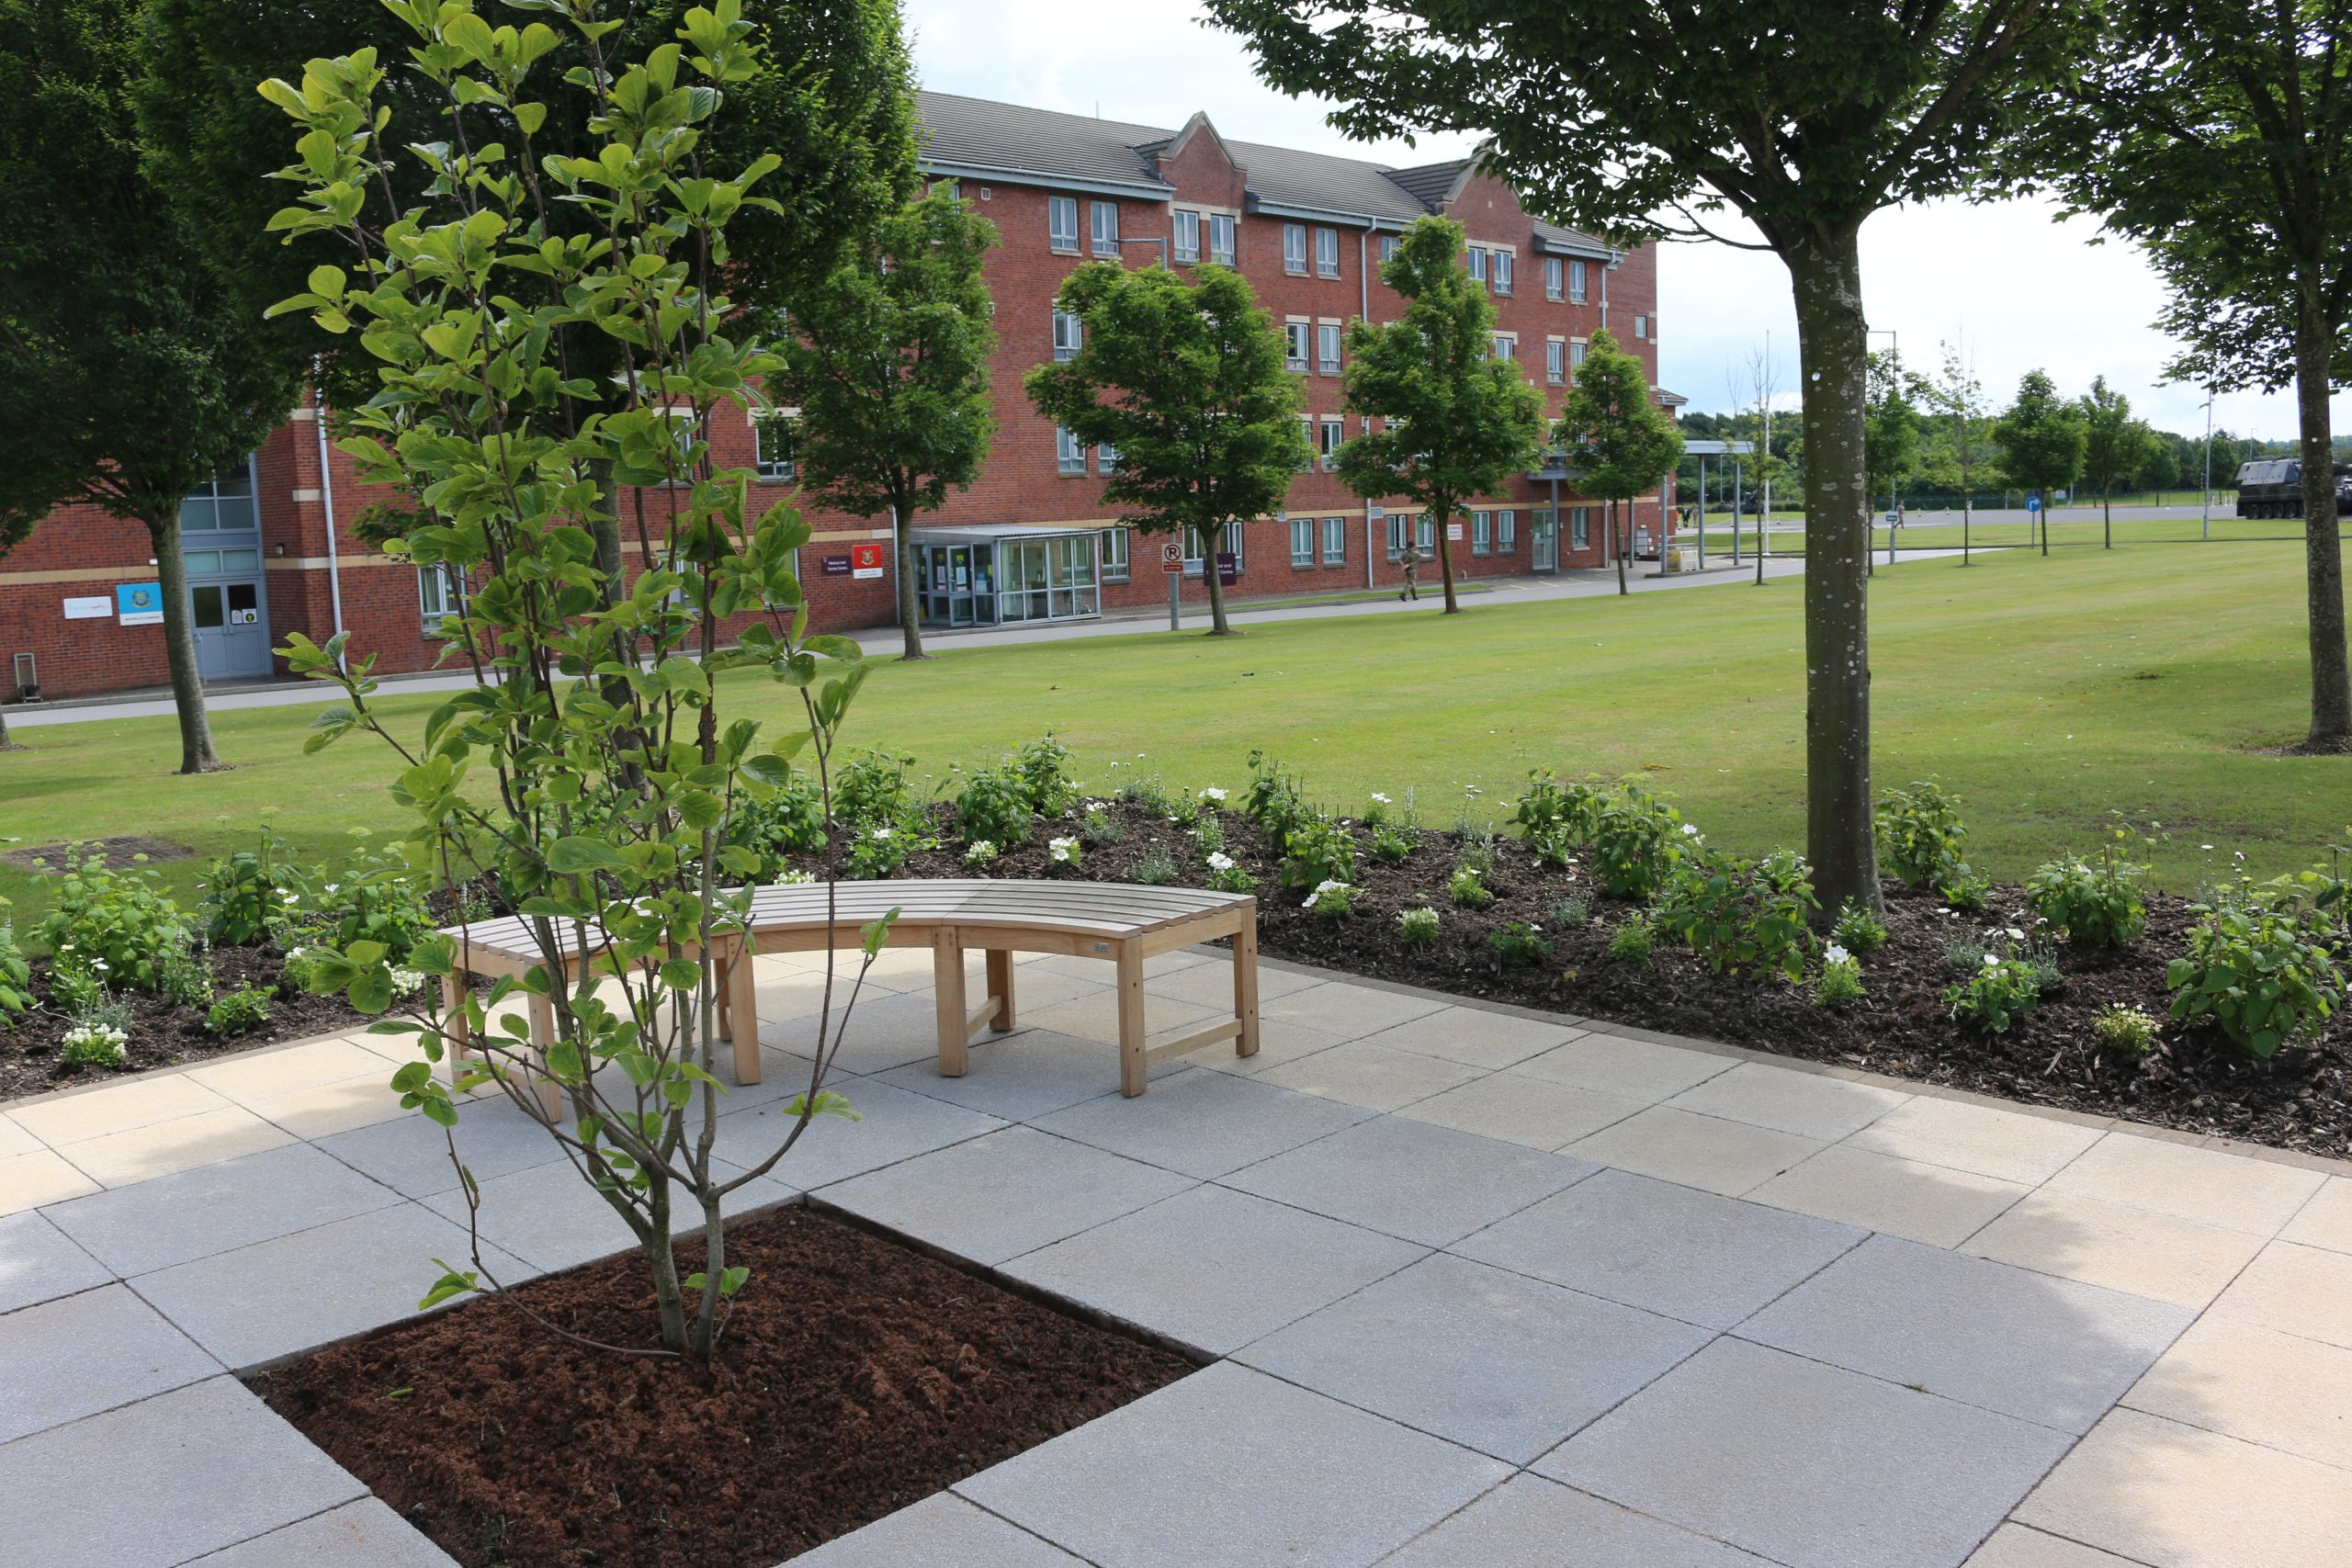 Sir Tom memorial – a tribute from a landscaping firm and nursery suppliers